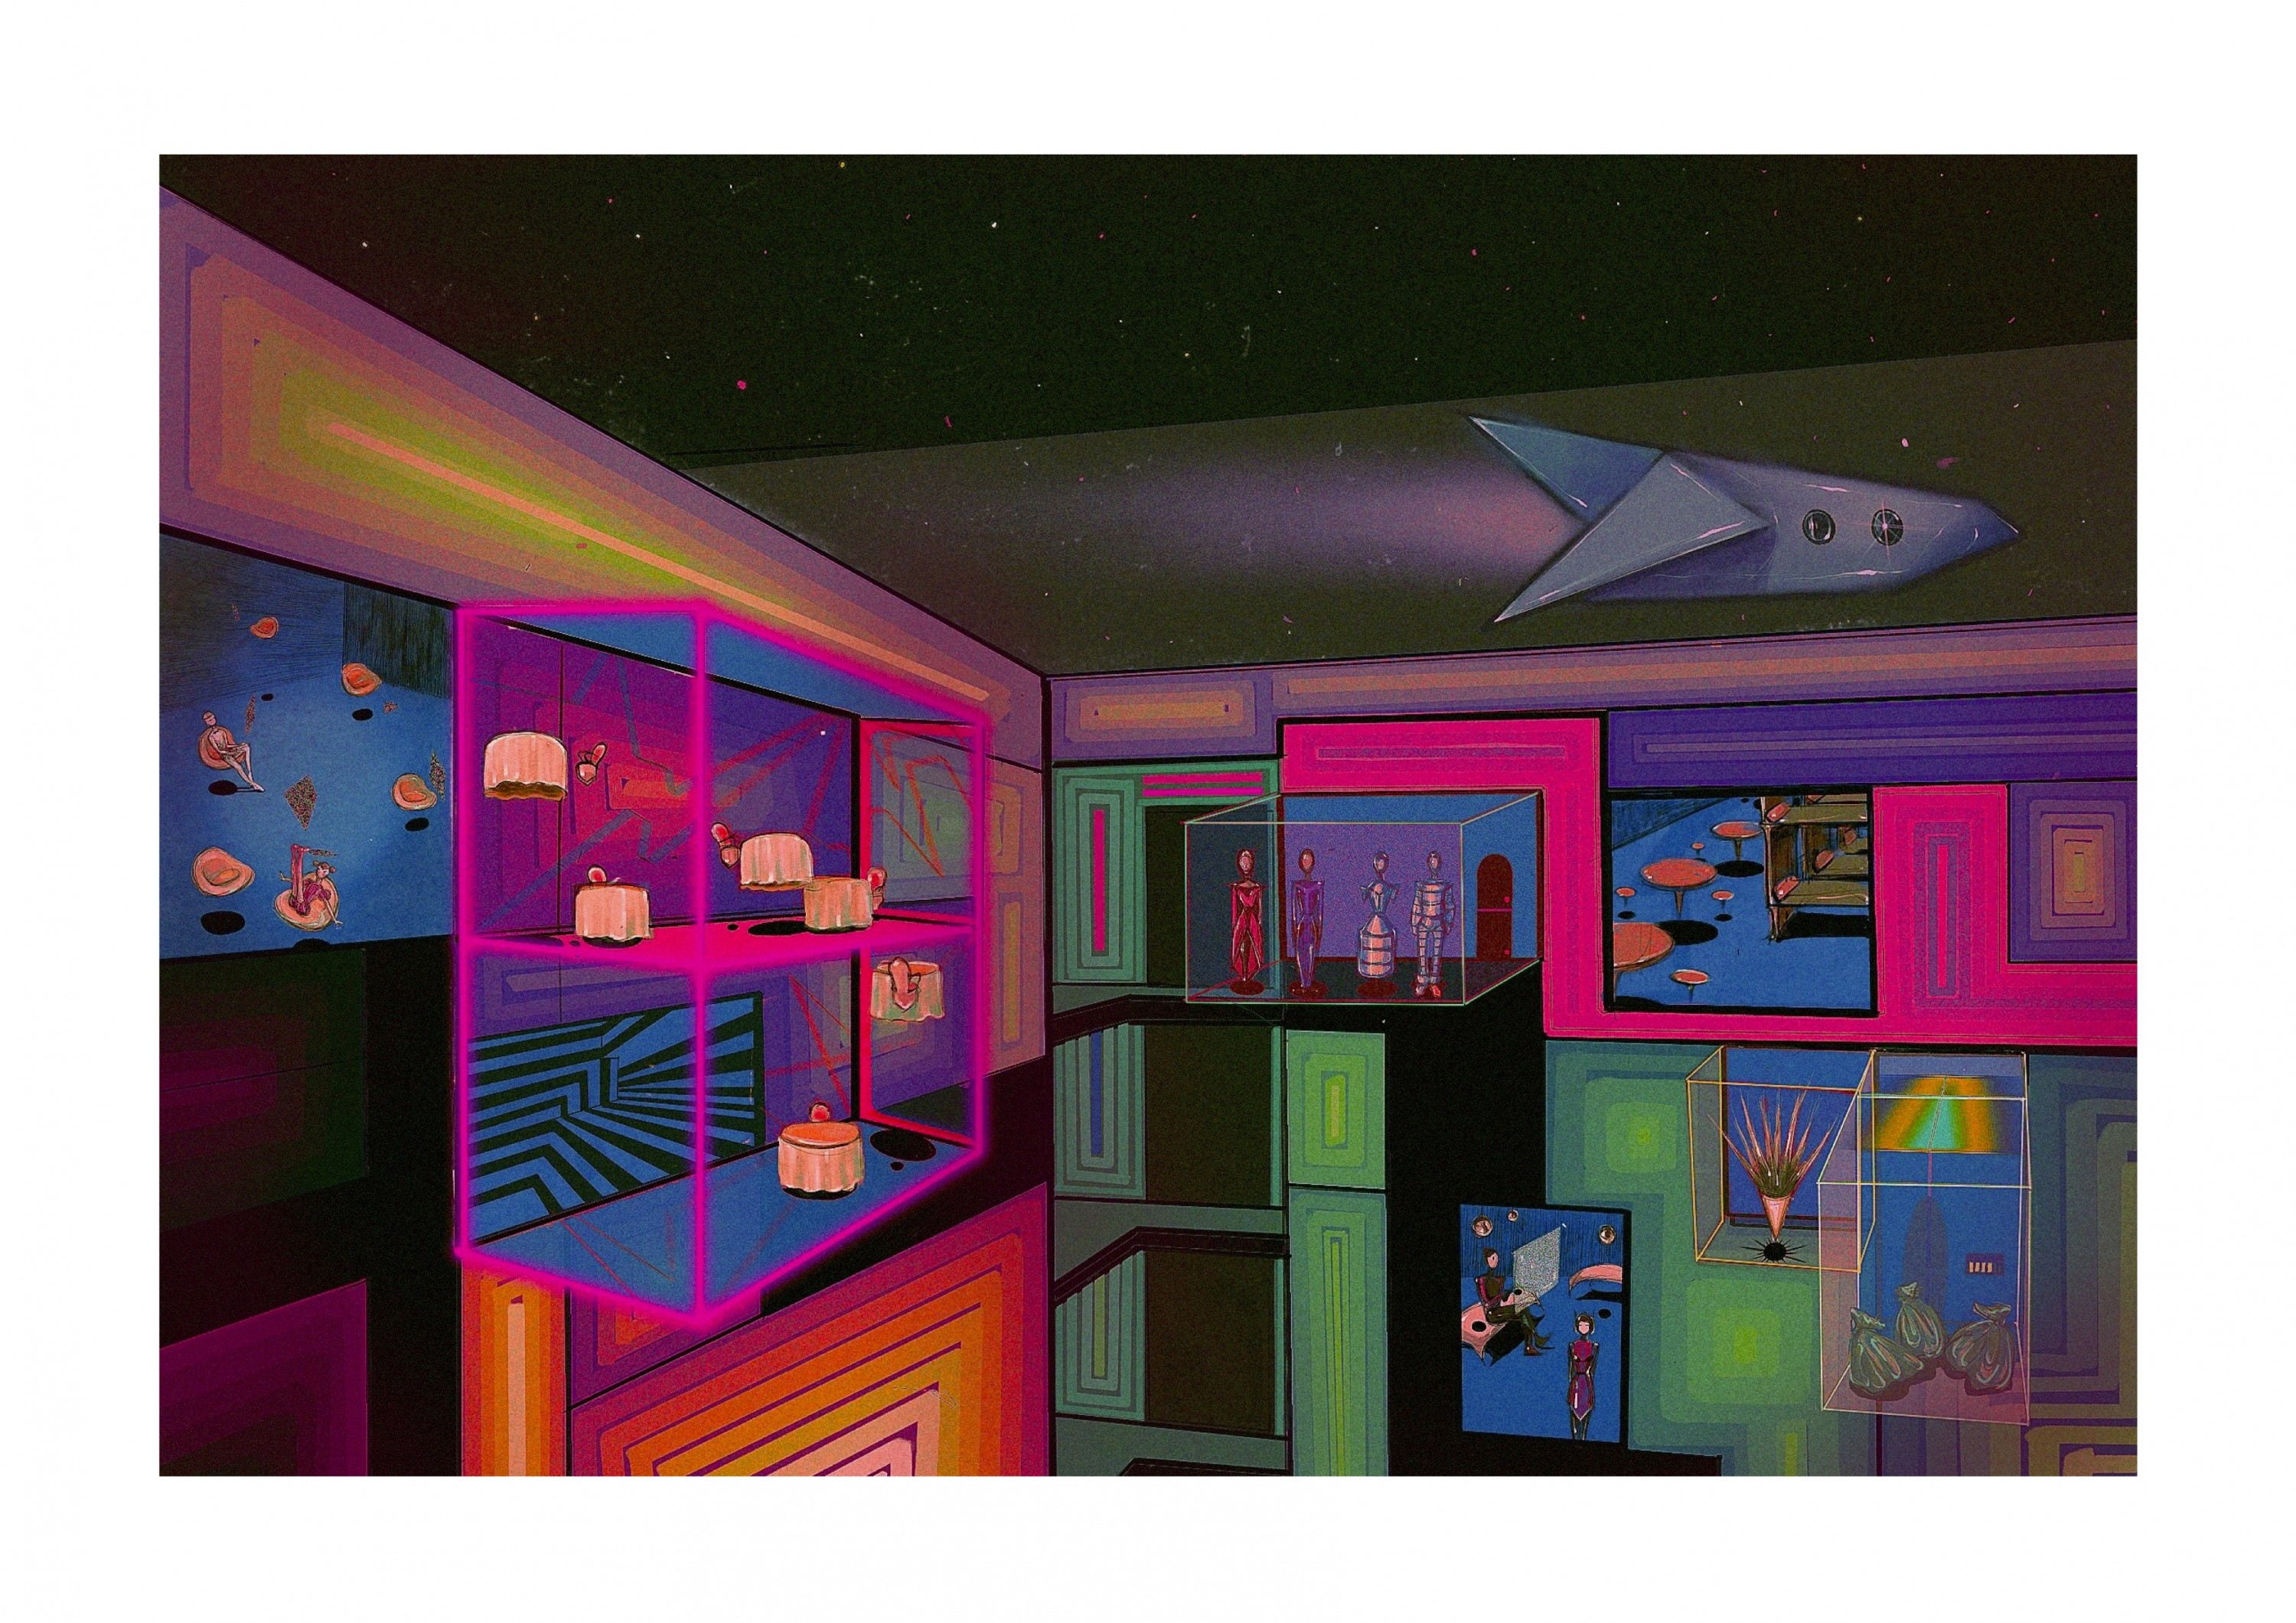 A piece of sci-fi illustration depicting an imaginary outer space residency space.